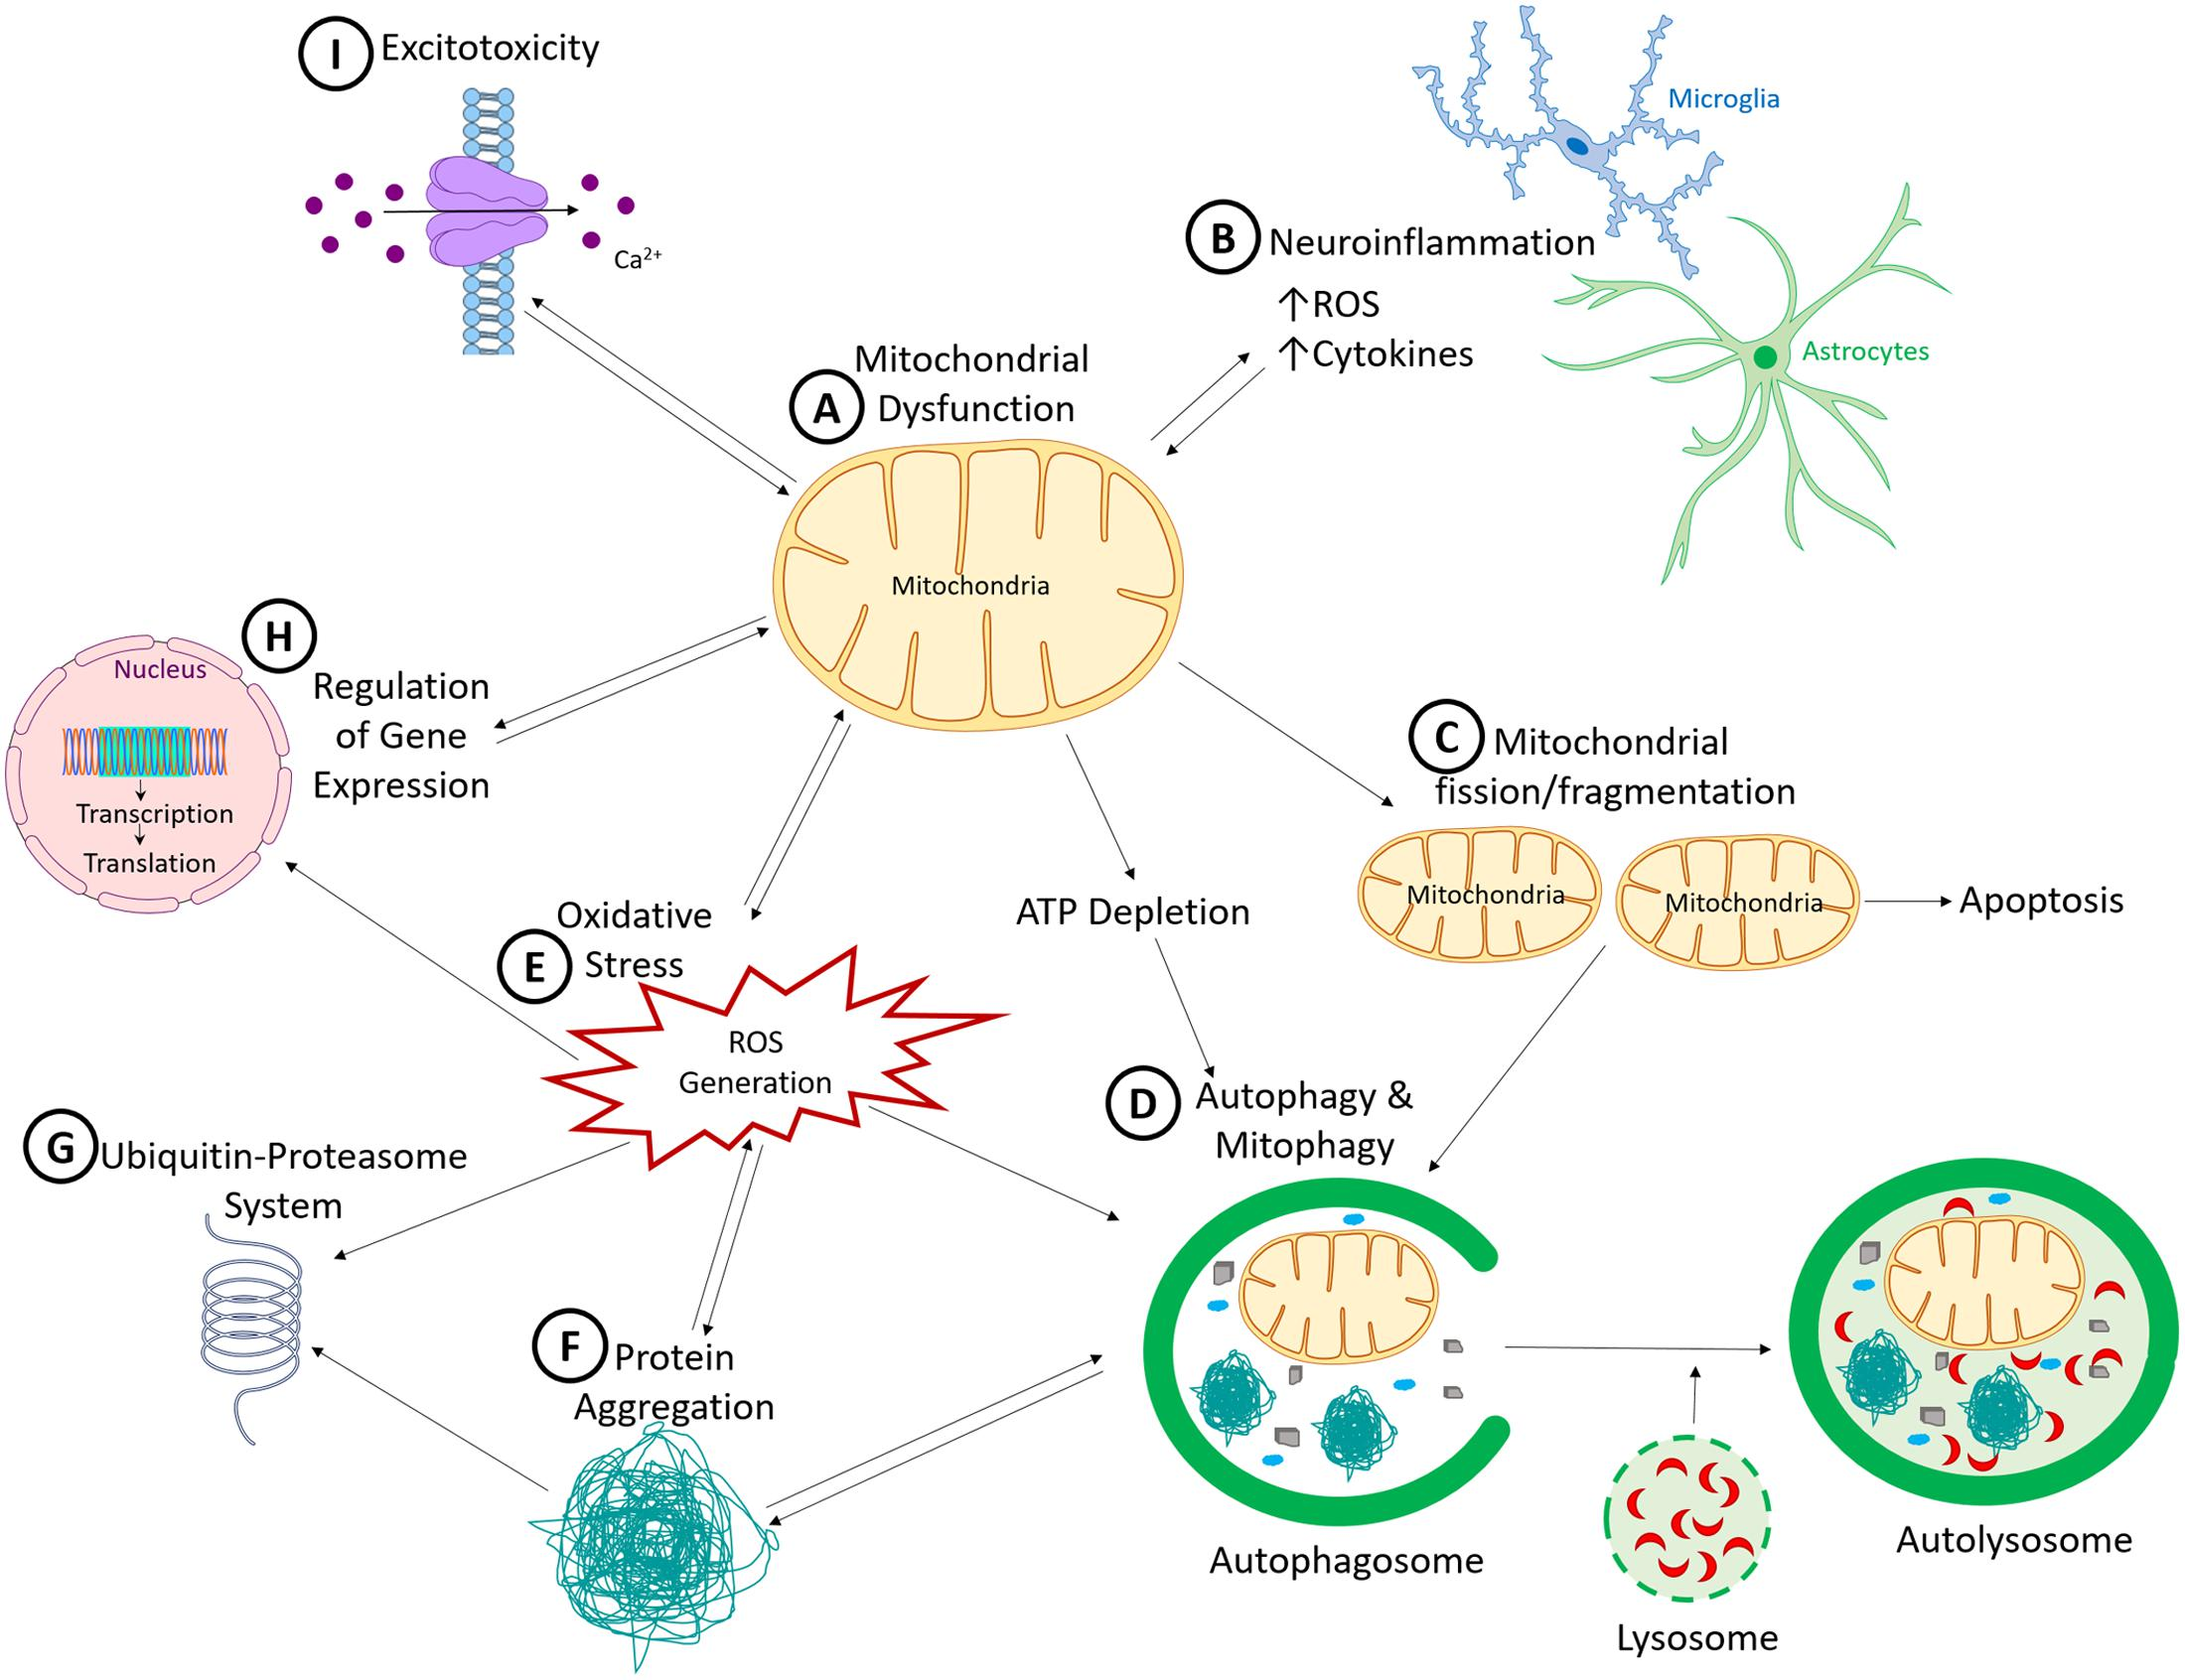 Mitochondrial Deficits In Children With >> Frontiers Mitochondria A Common Target For Genetic Mutations And